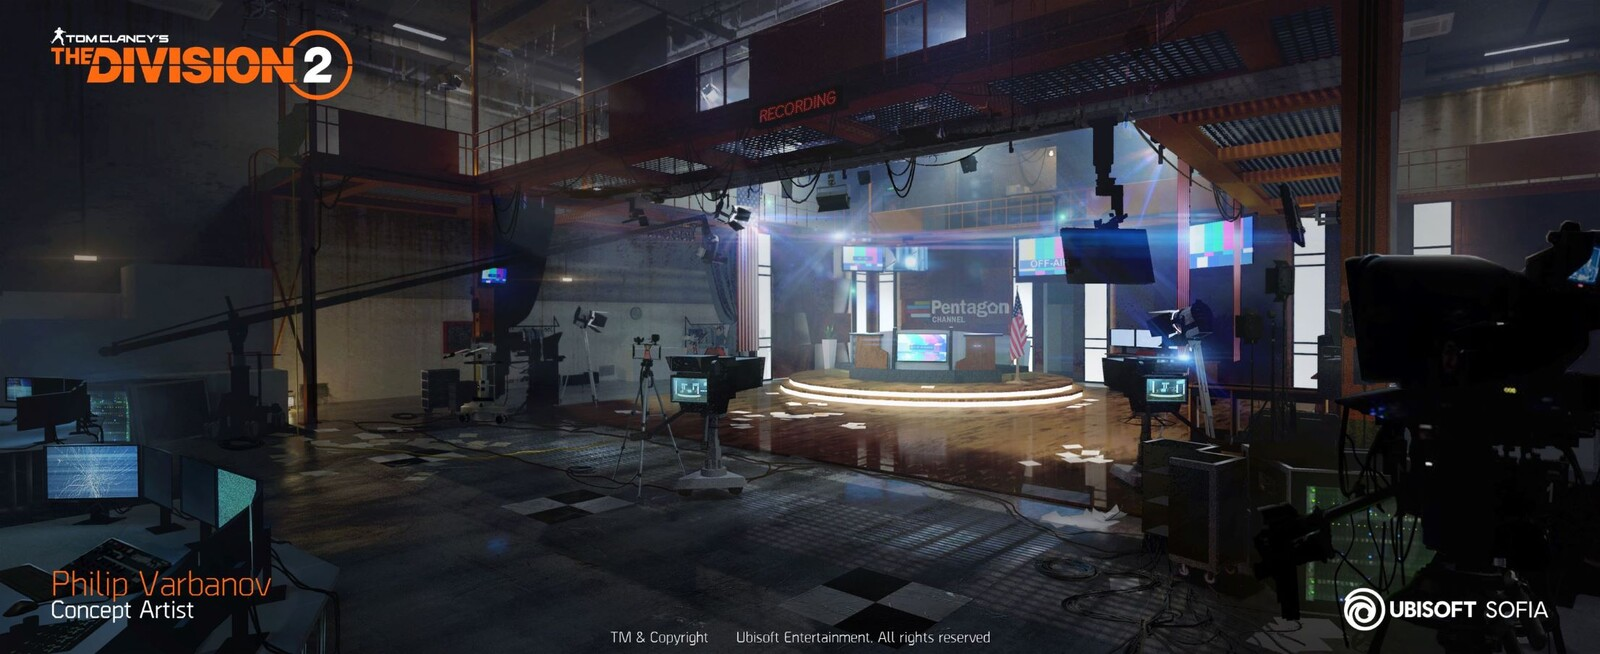 The Division 2 - Pentagon Newsroom